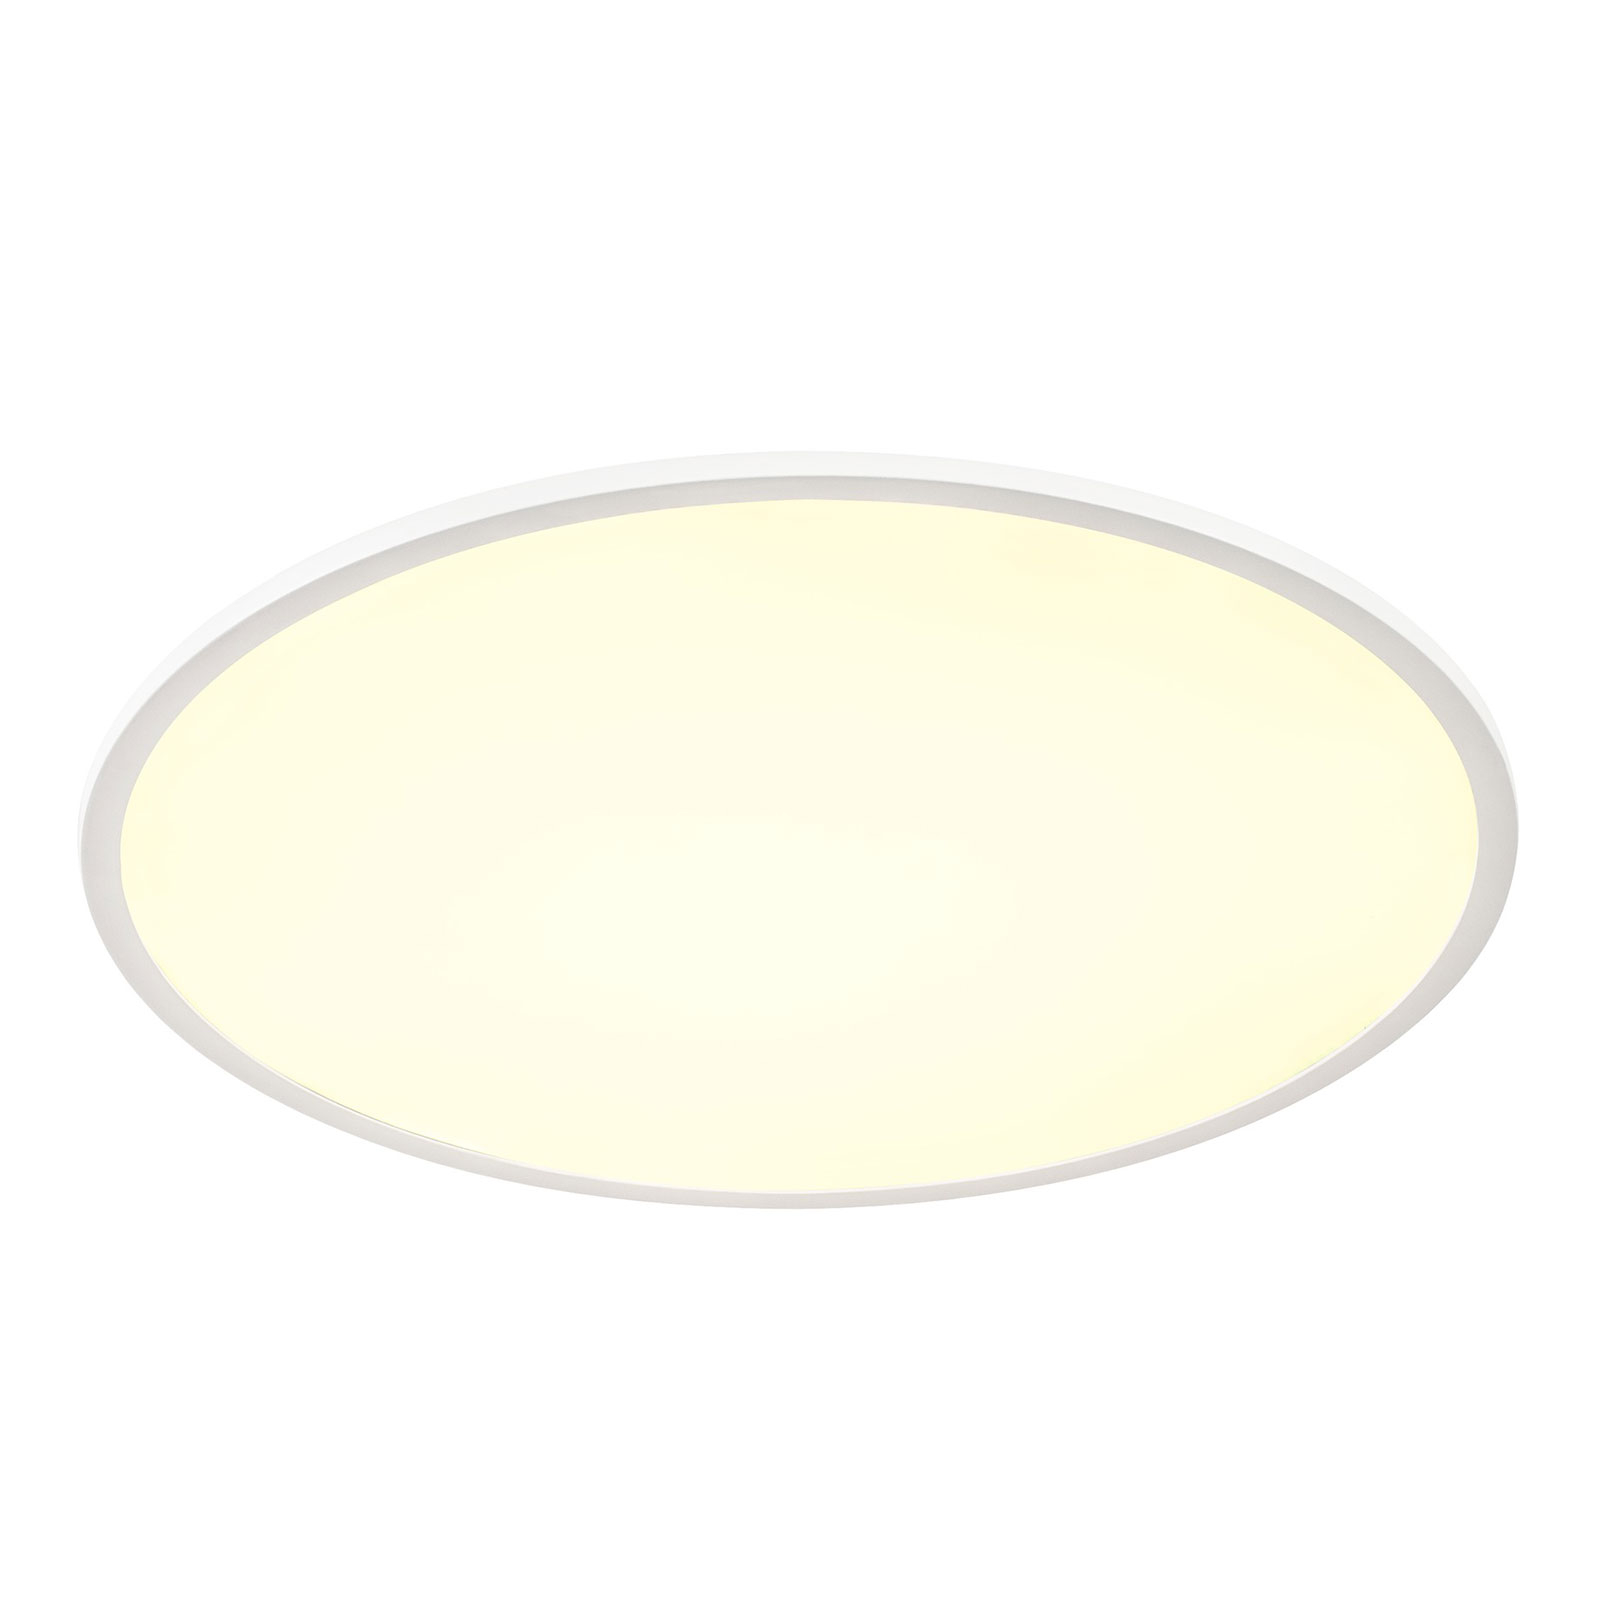 SLV Panel 60 LED plafondlamp, 4.000K wit